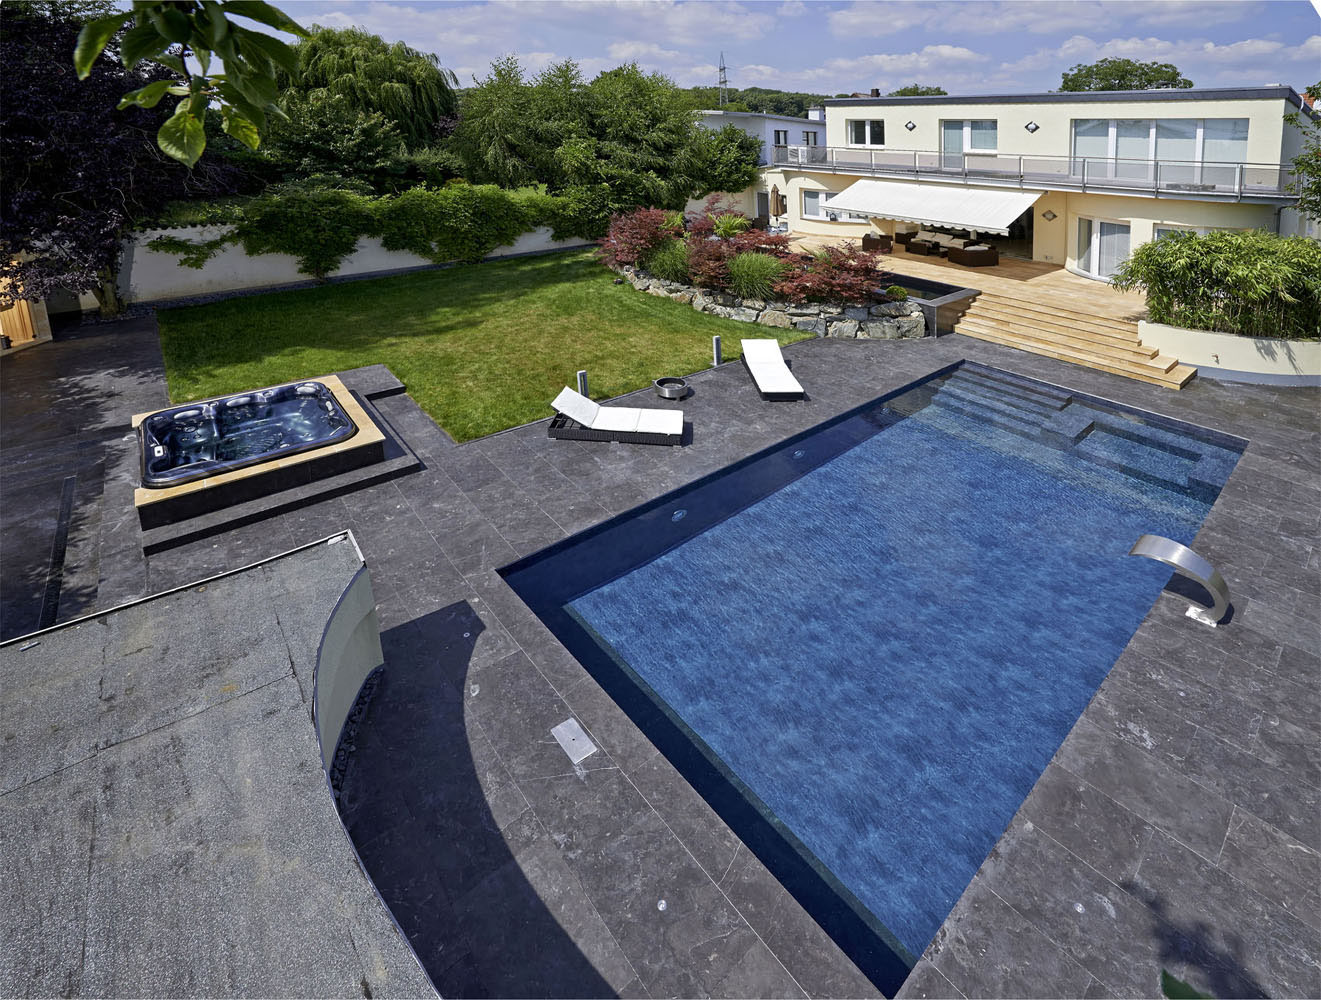 Poolfolie Reinigen Folien Farbe Alkorplan Touch Elegance Pool And More Gmbh